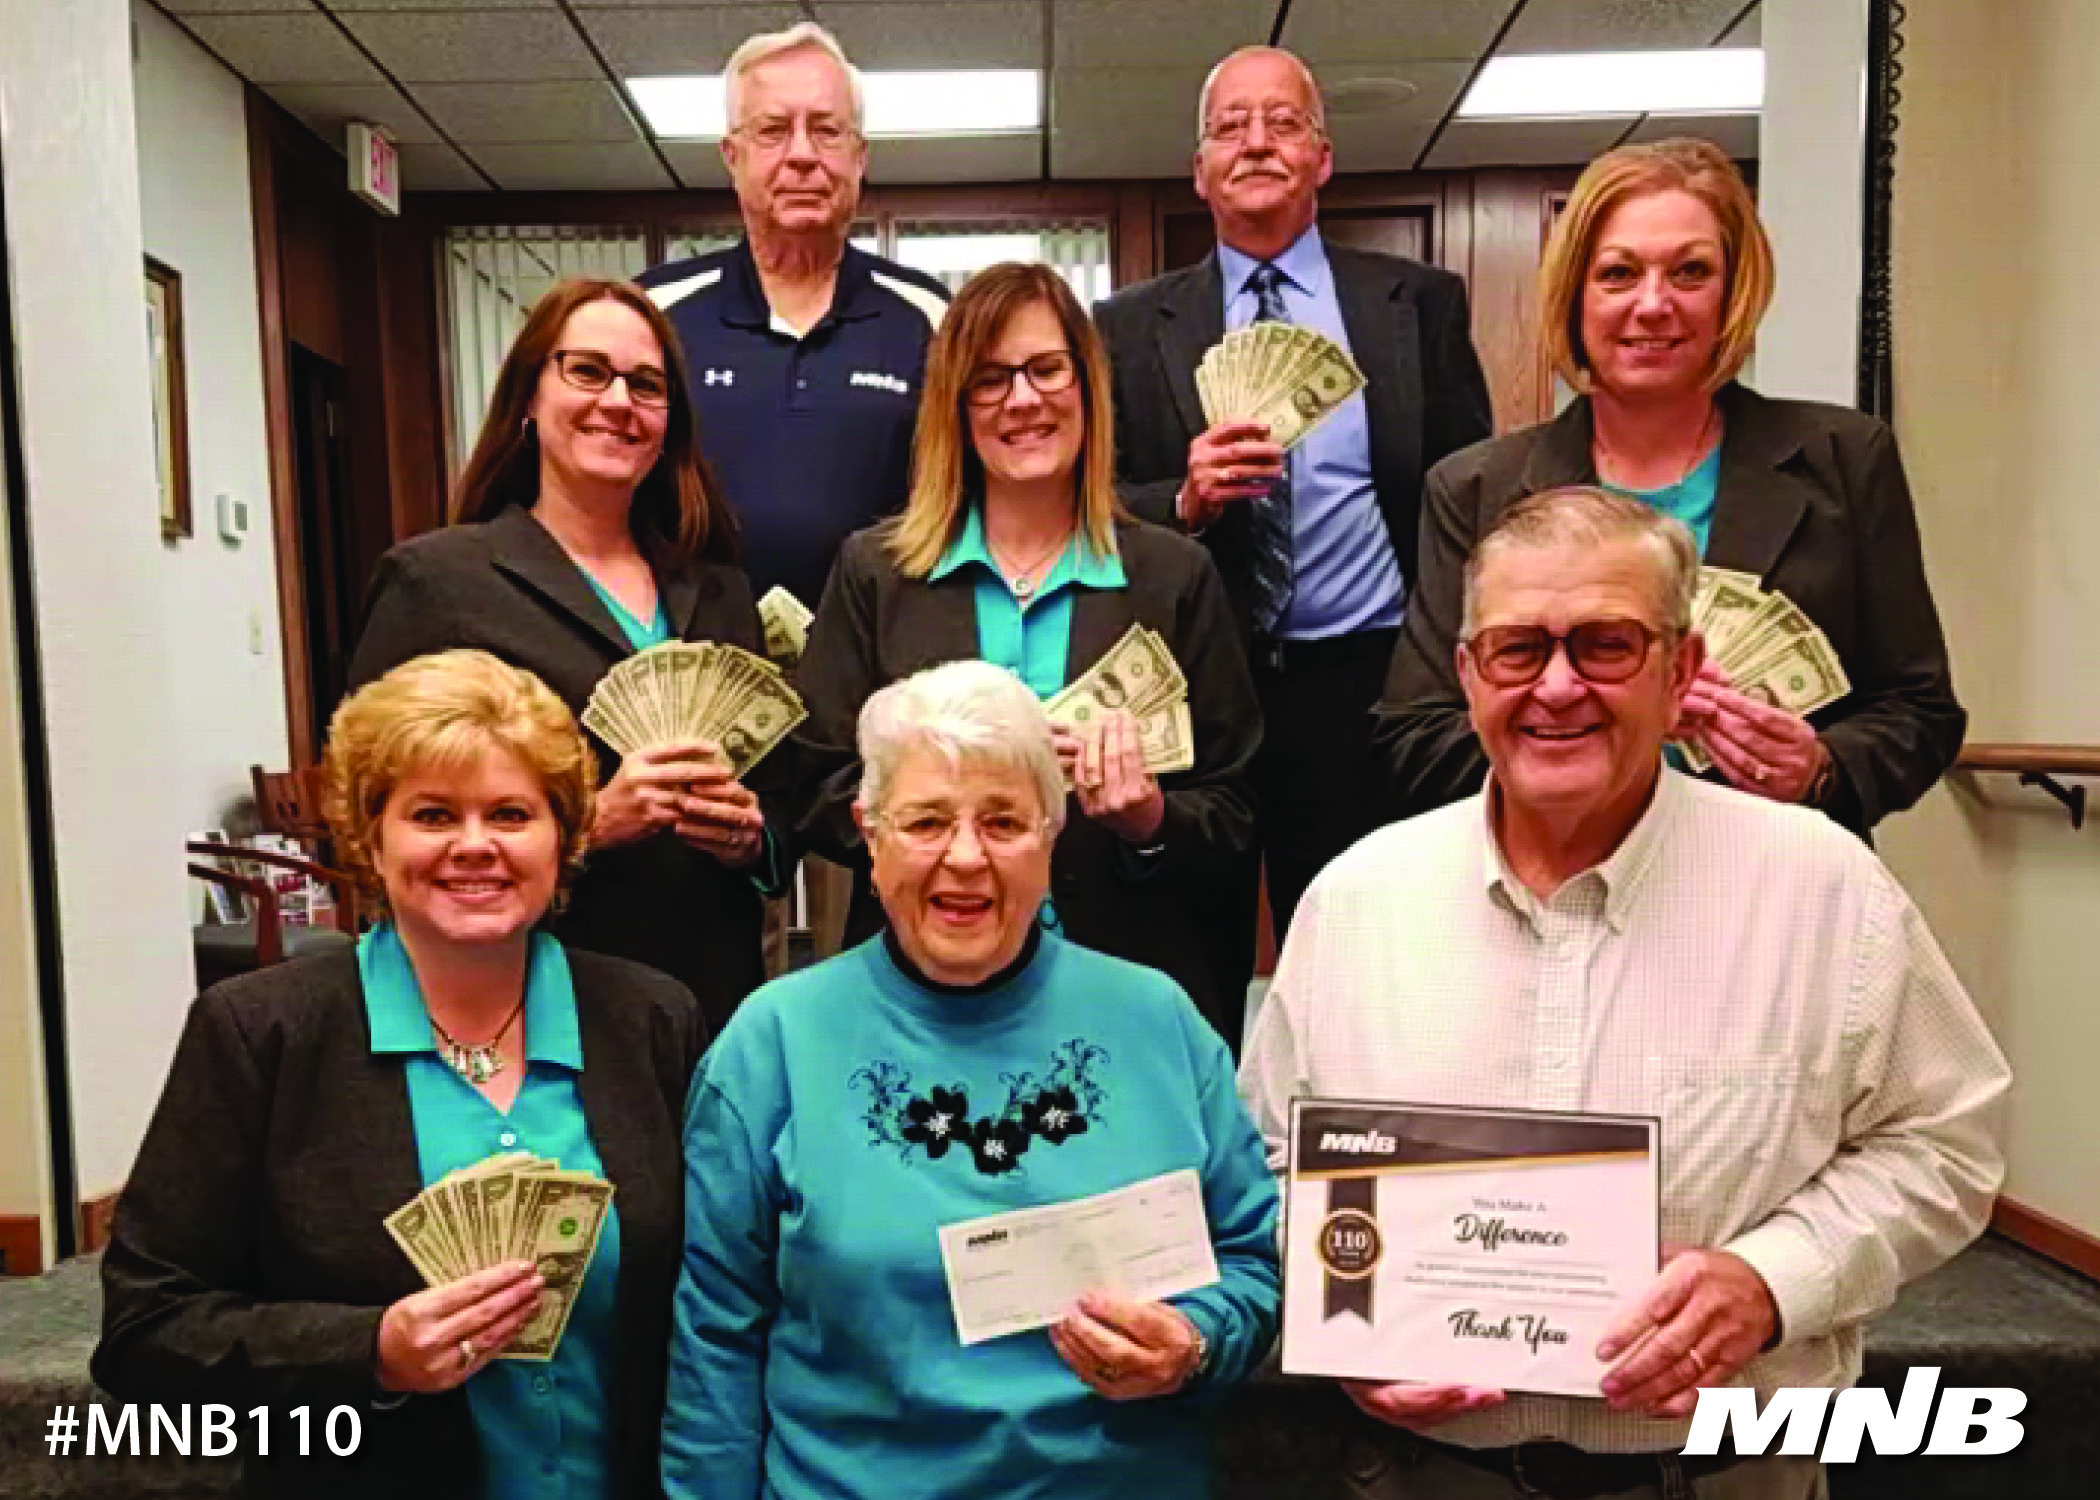 MNB presents $110 donation to McCook Food Pantry